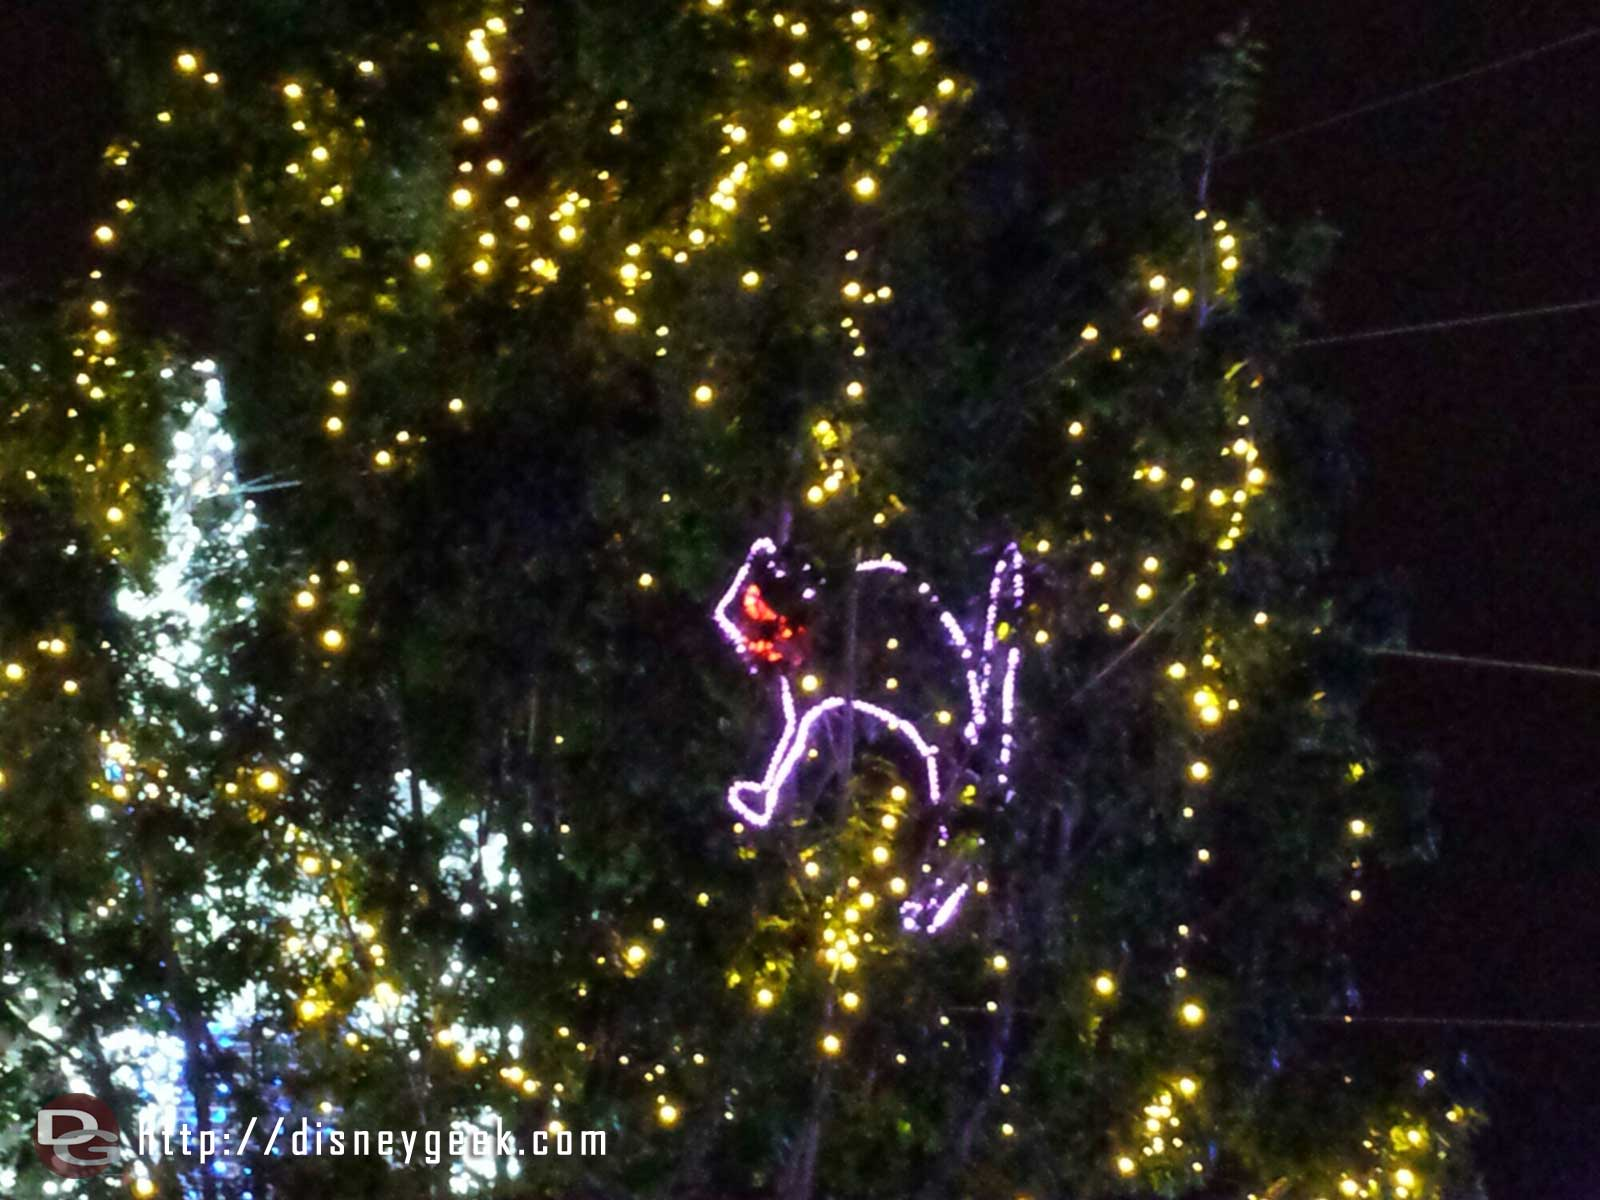 Found the cat – Osborne Family Spectacle of Dancing Lights at Disney's Hollywood Studios